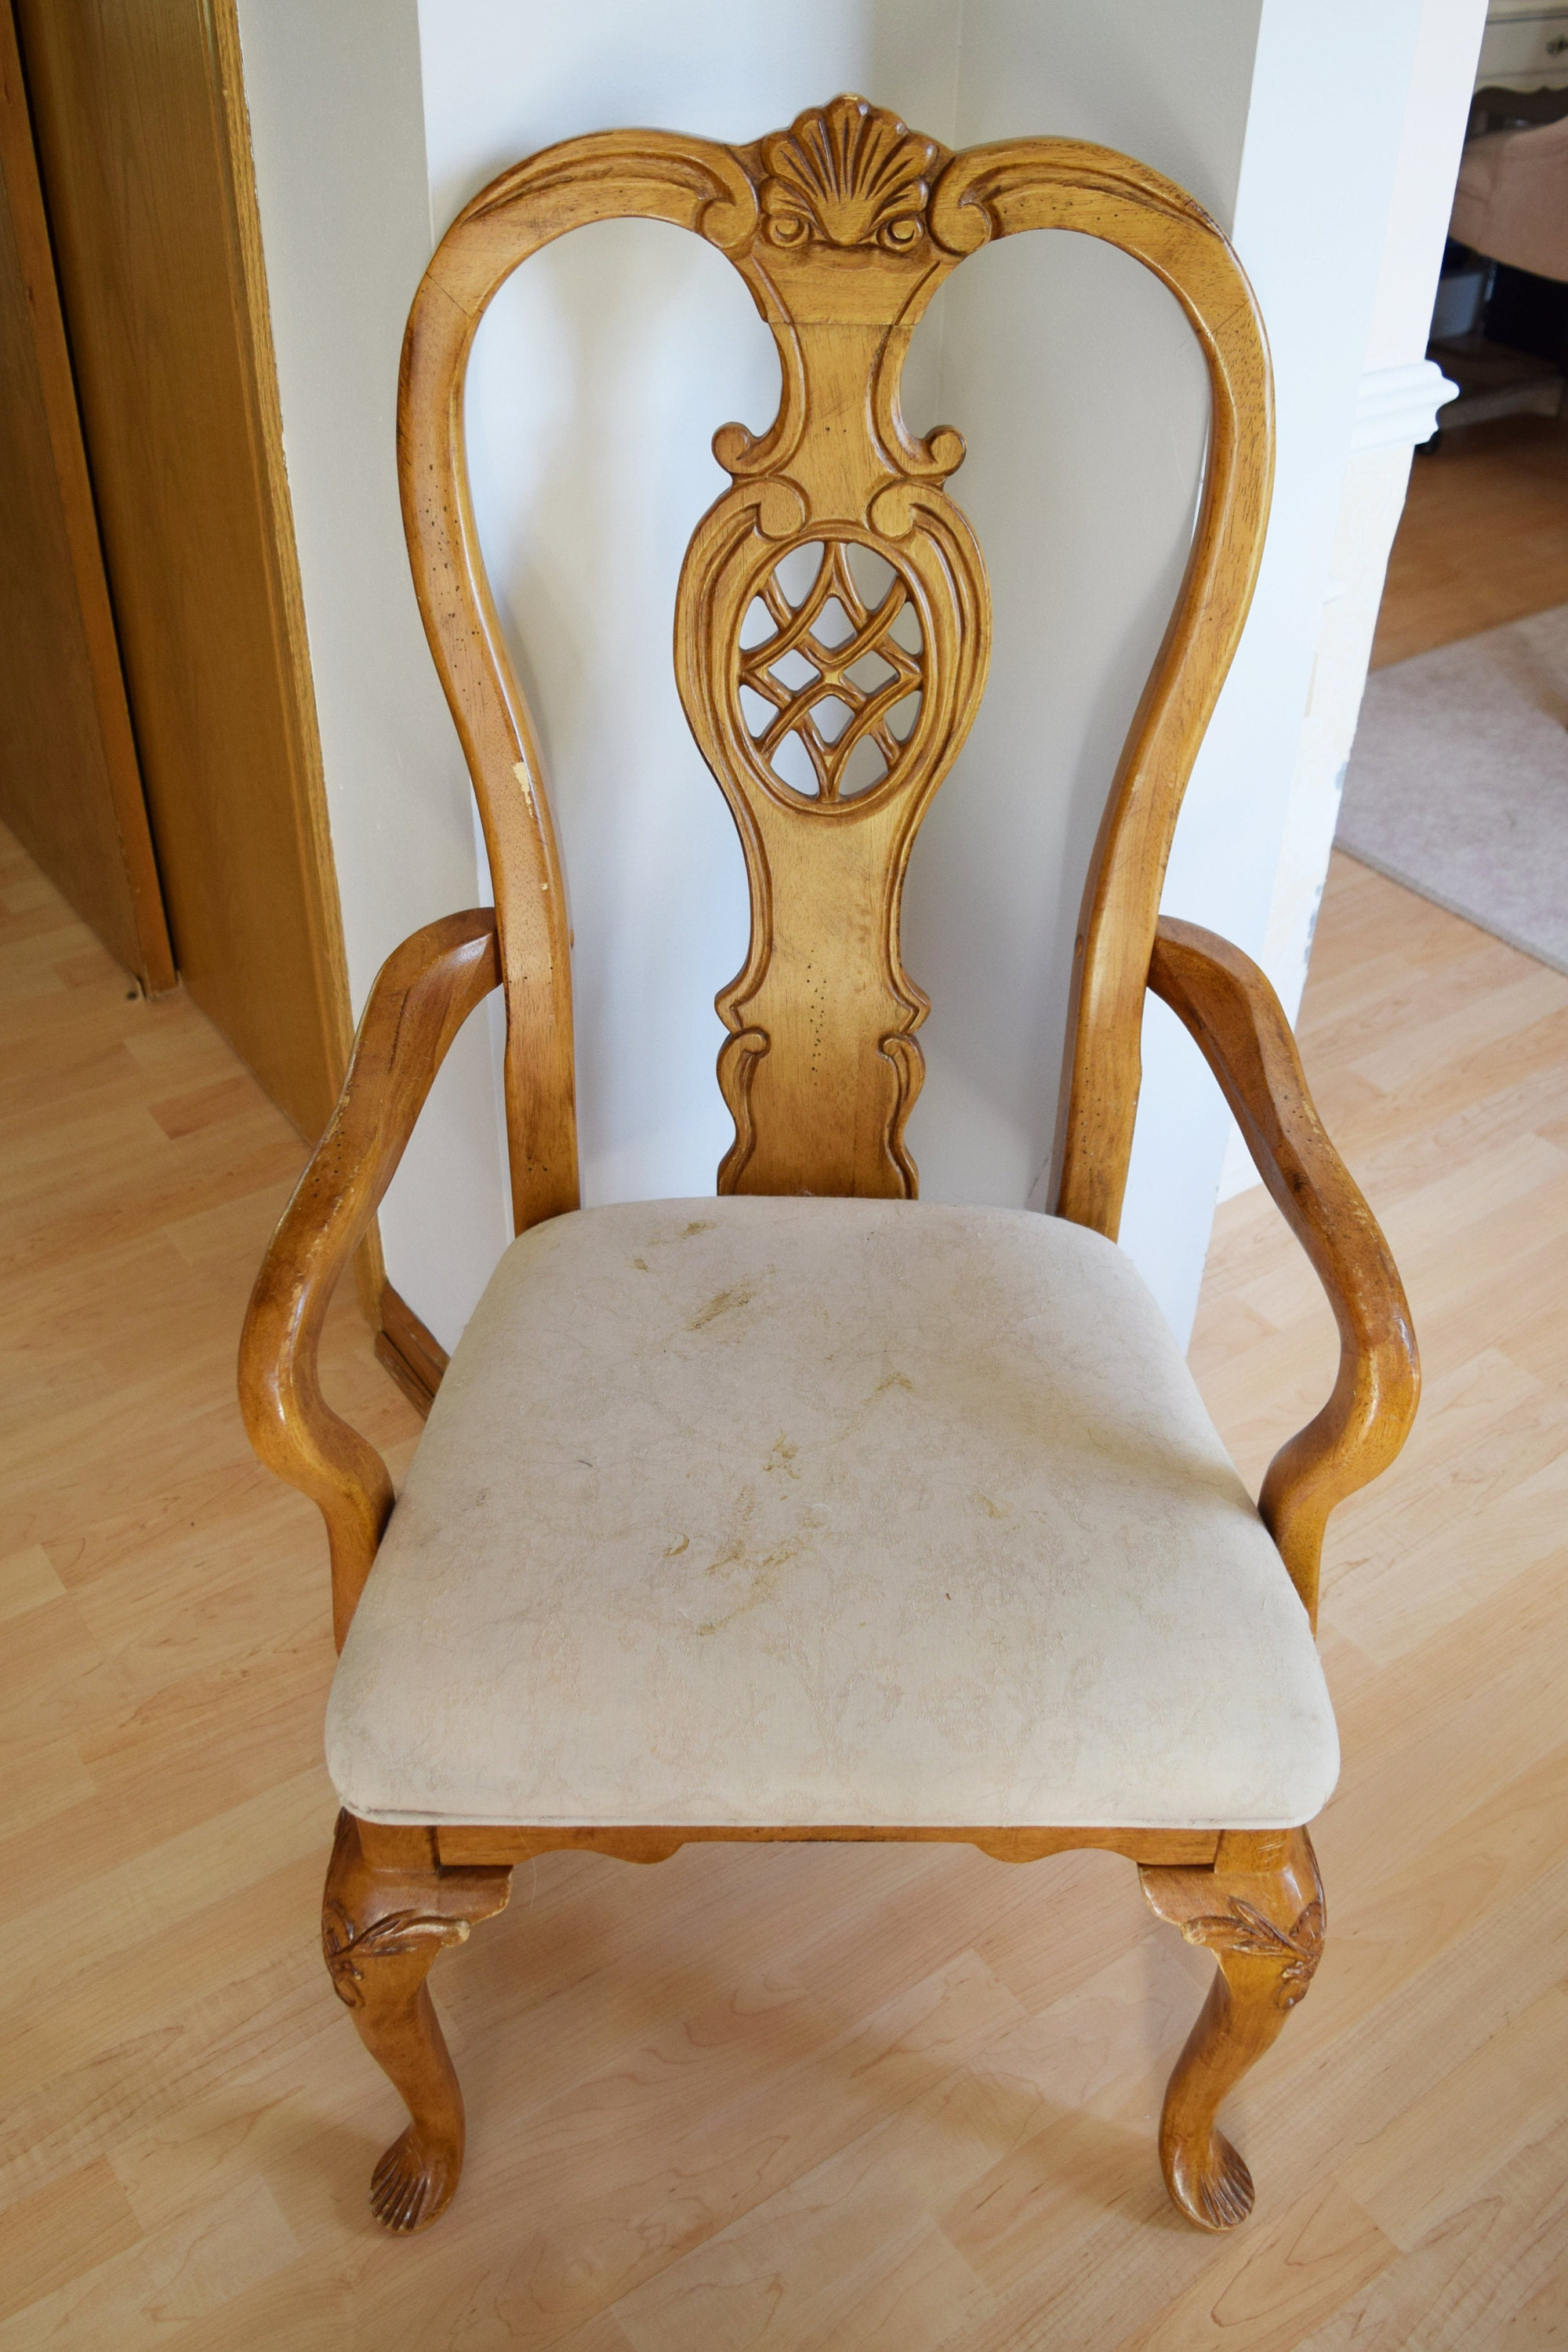 our white chair full of dirt & years of staining from use.